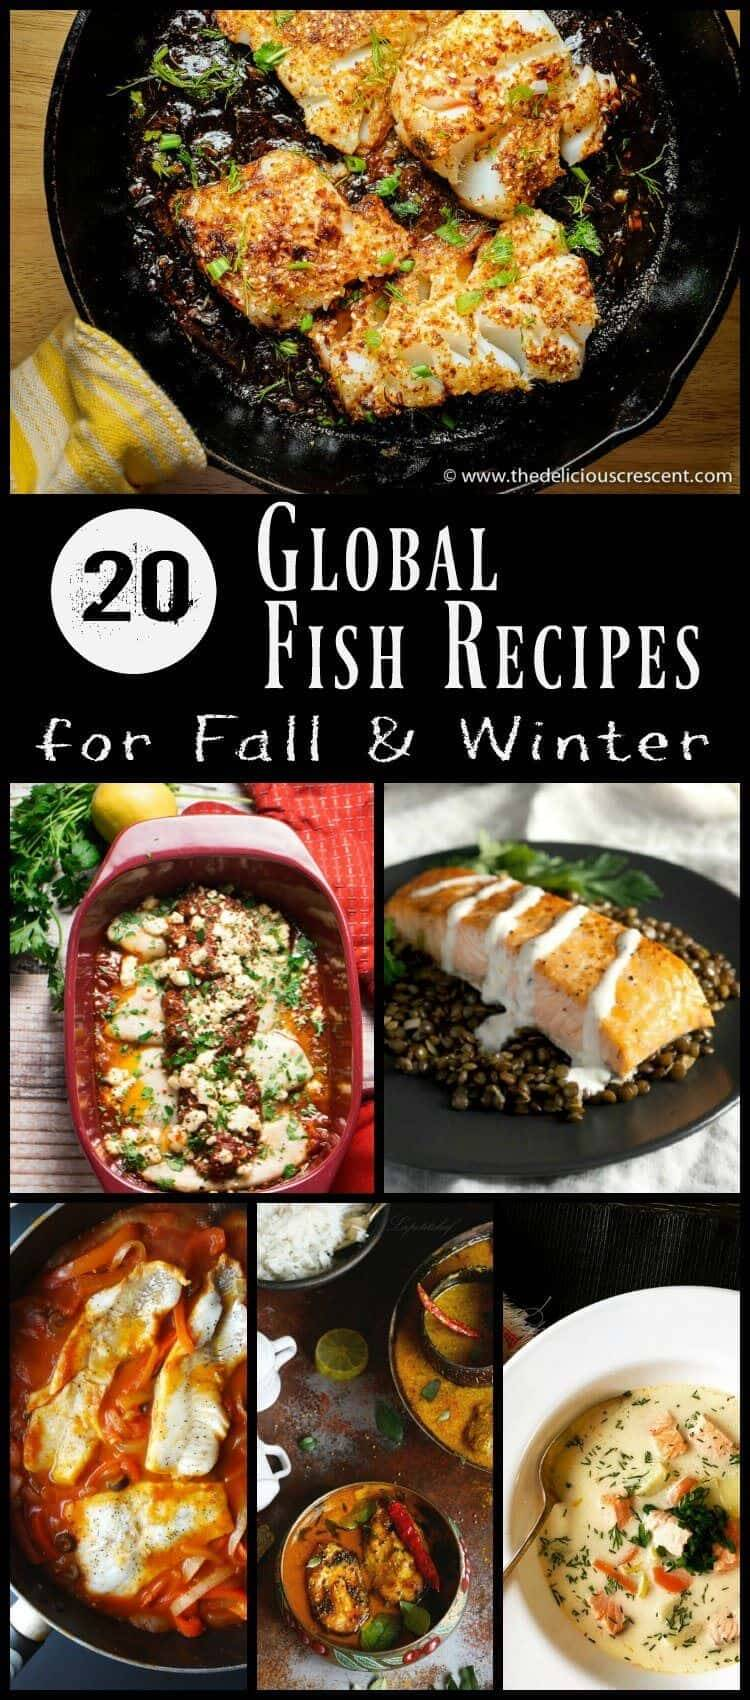 20 Global Fish Recipes Pin - Whether you're looking to lighten up your diet or just love fish, I've got 20 Global Fish Recipes right here that are sure to provide lots of inspiration and delicious meals around the table with loved ones! #globalfishrecipes #internationalfishrecipes #healthyfishrecipes #fallfishrecipes #fishstew #pescatarianrecipes